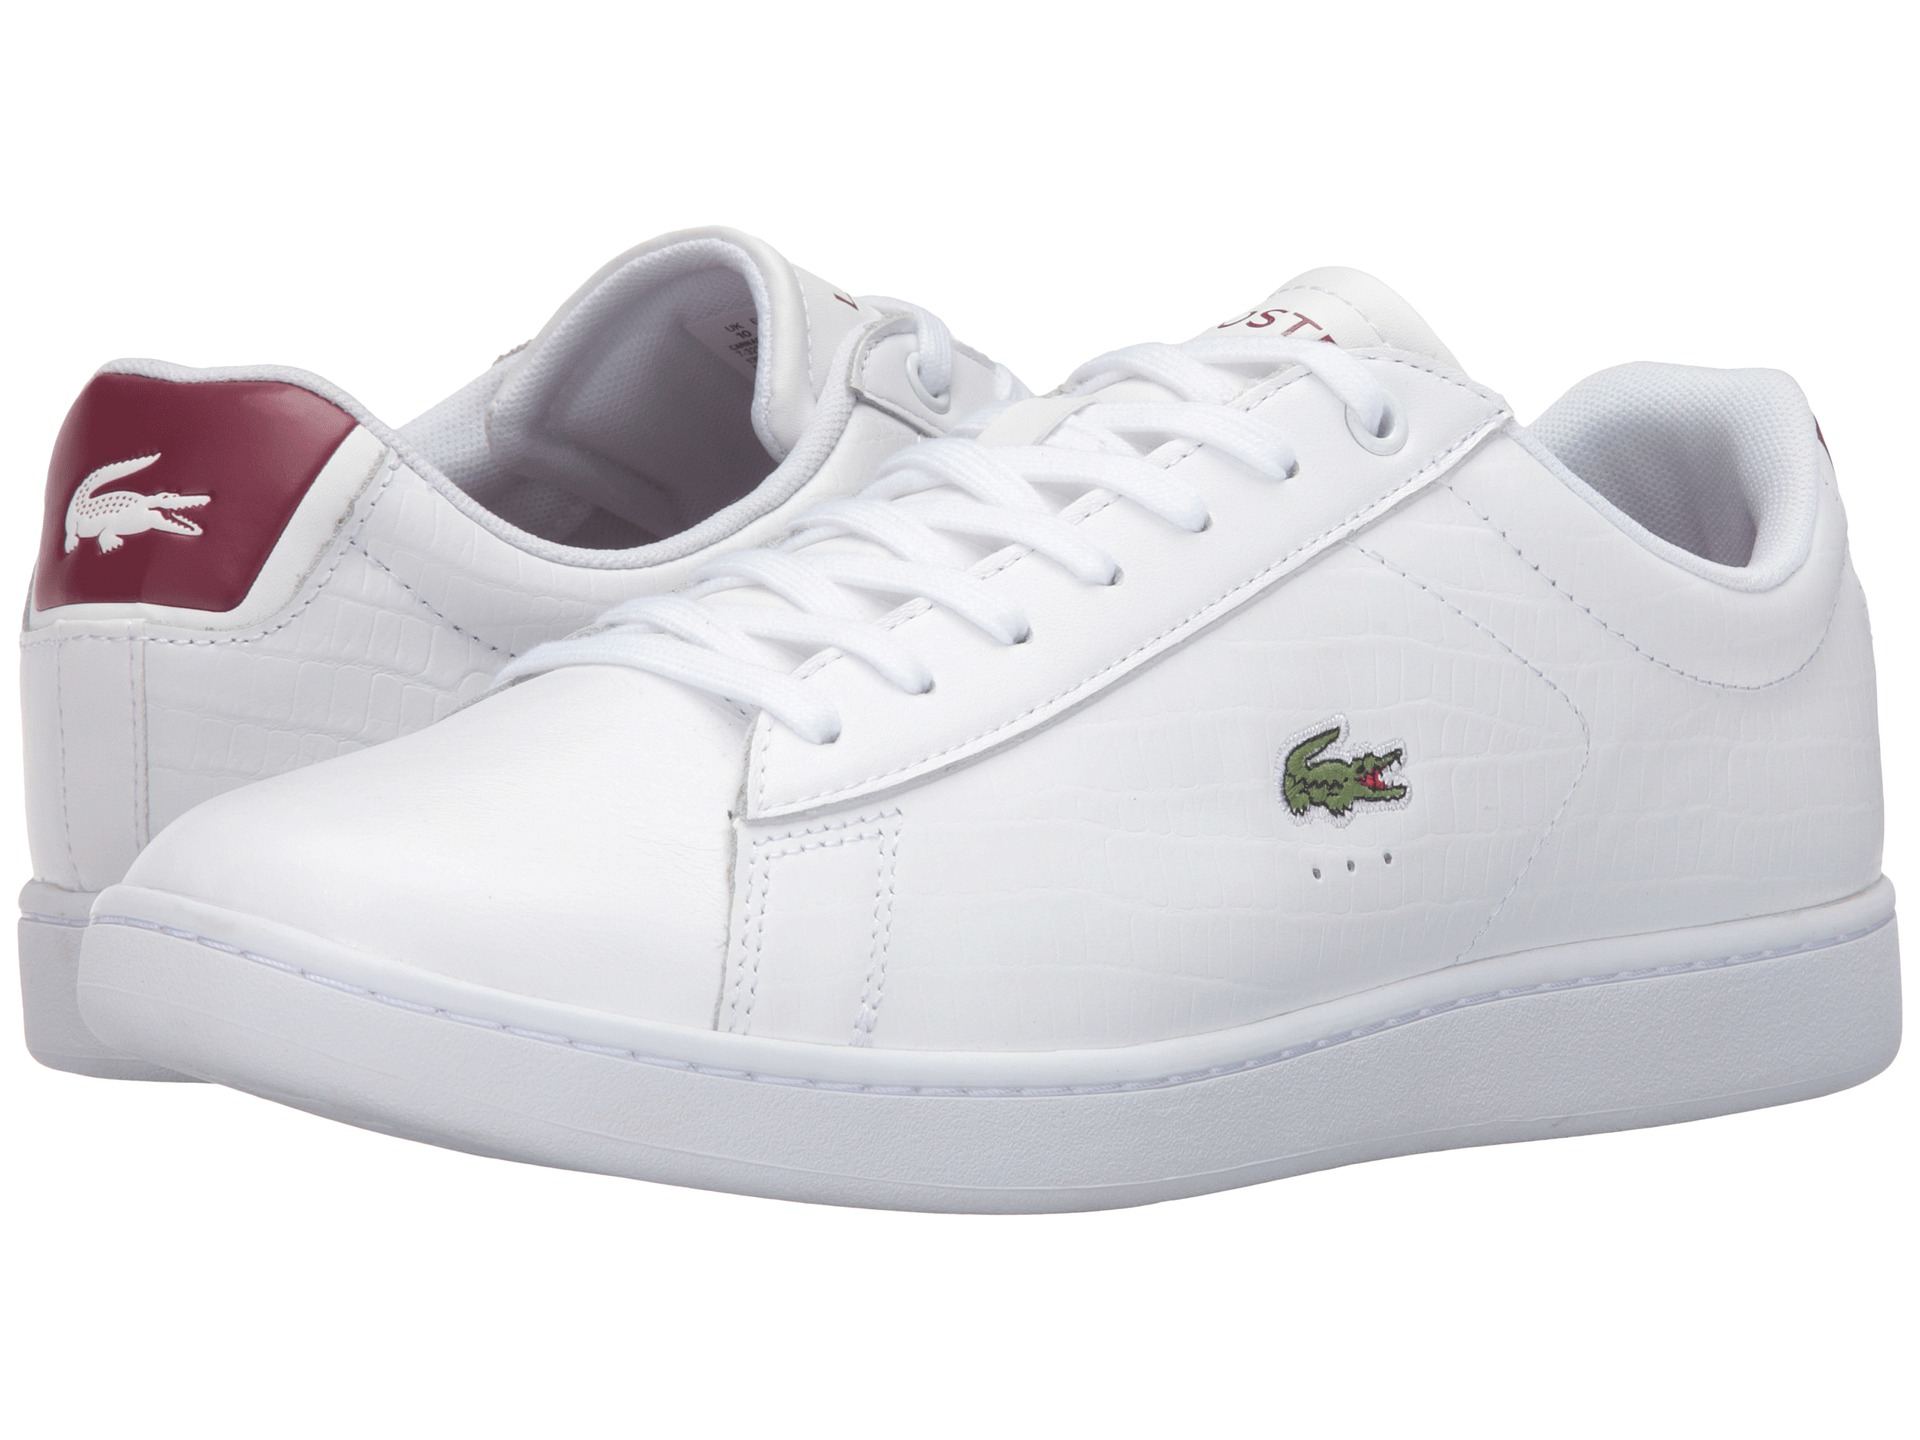 Lacoste Carnaby MOD - white - green Discount